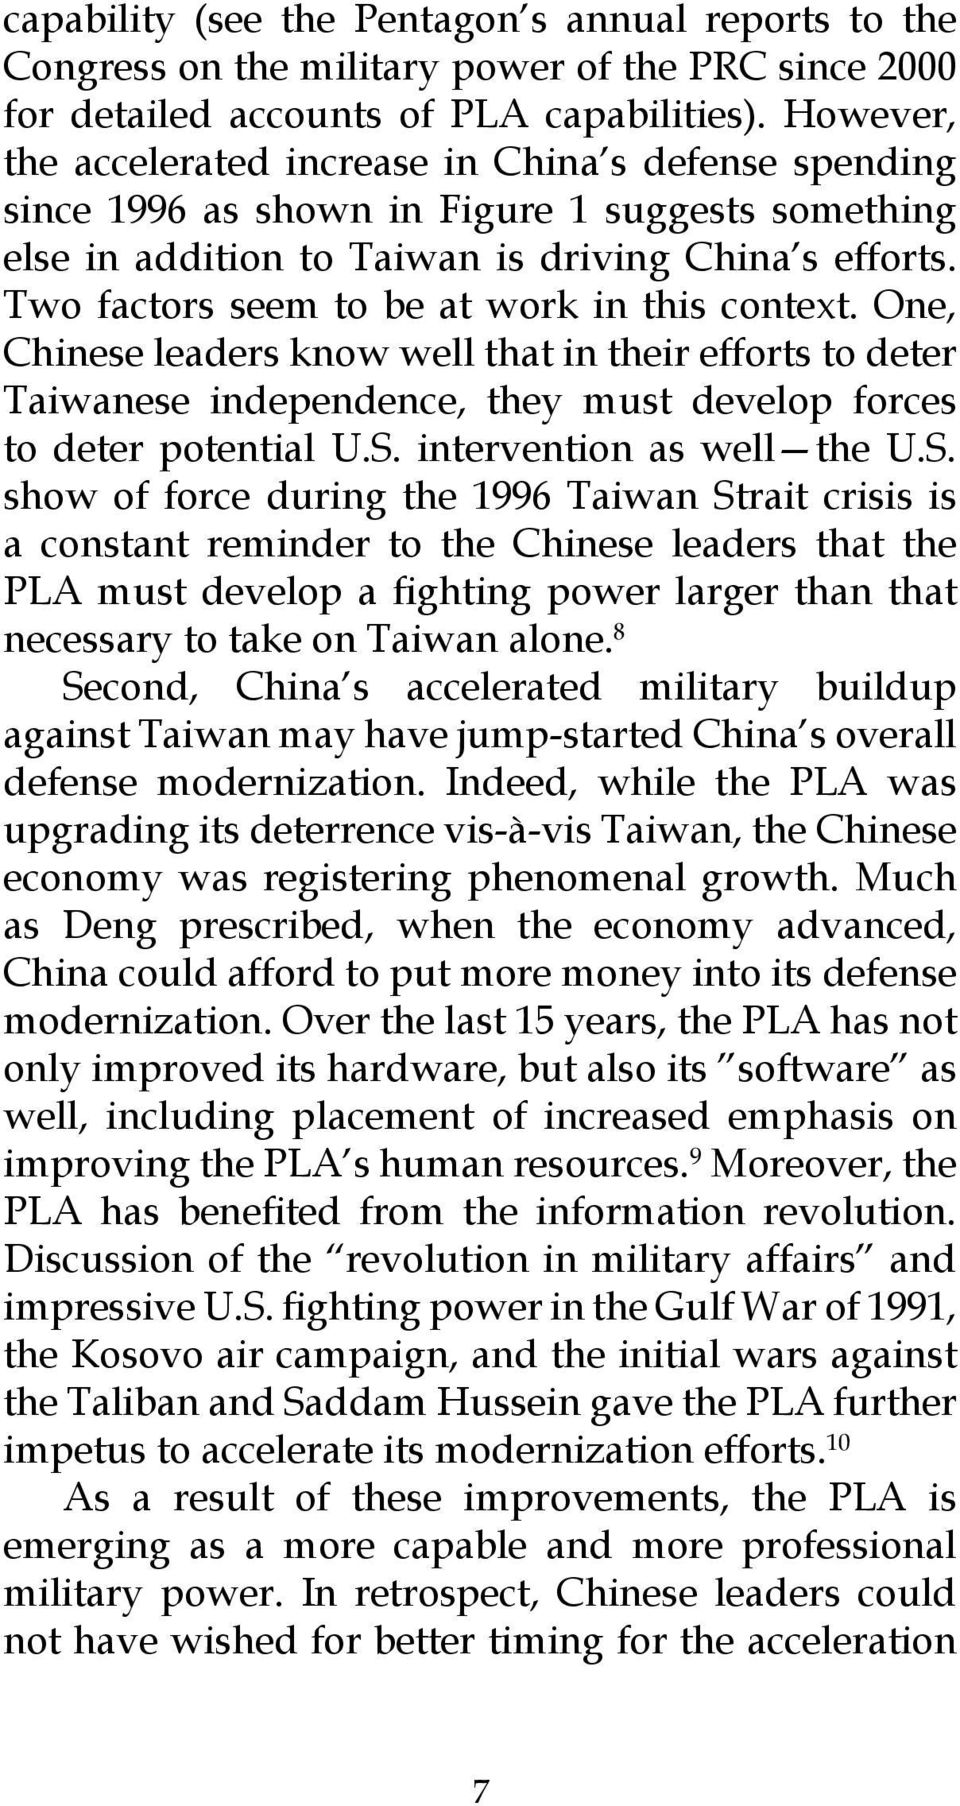 Two factors seem to be at work in this context. One, Chinese leaders know well that in their efforts to deter Taiwanese independence, they must develop forces to deter potential U.S.